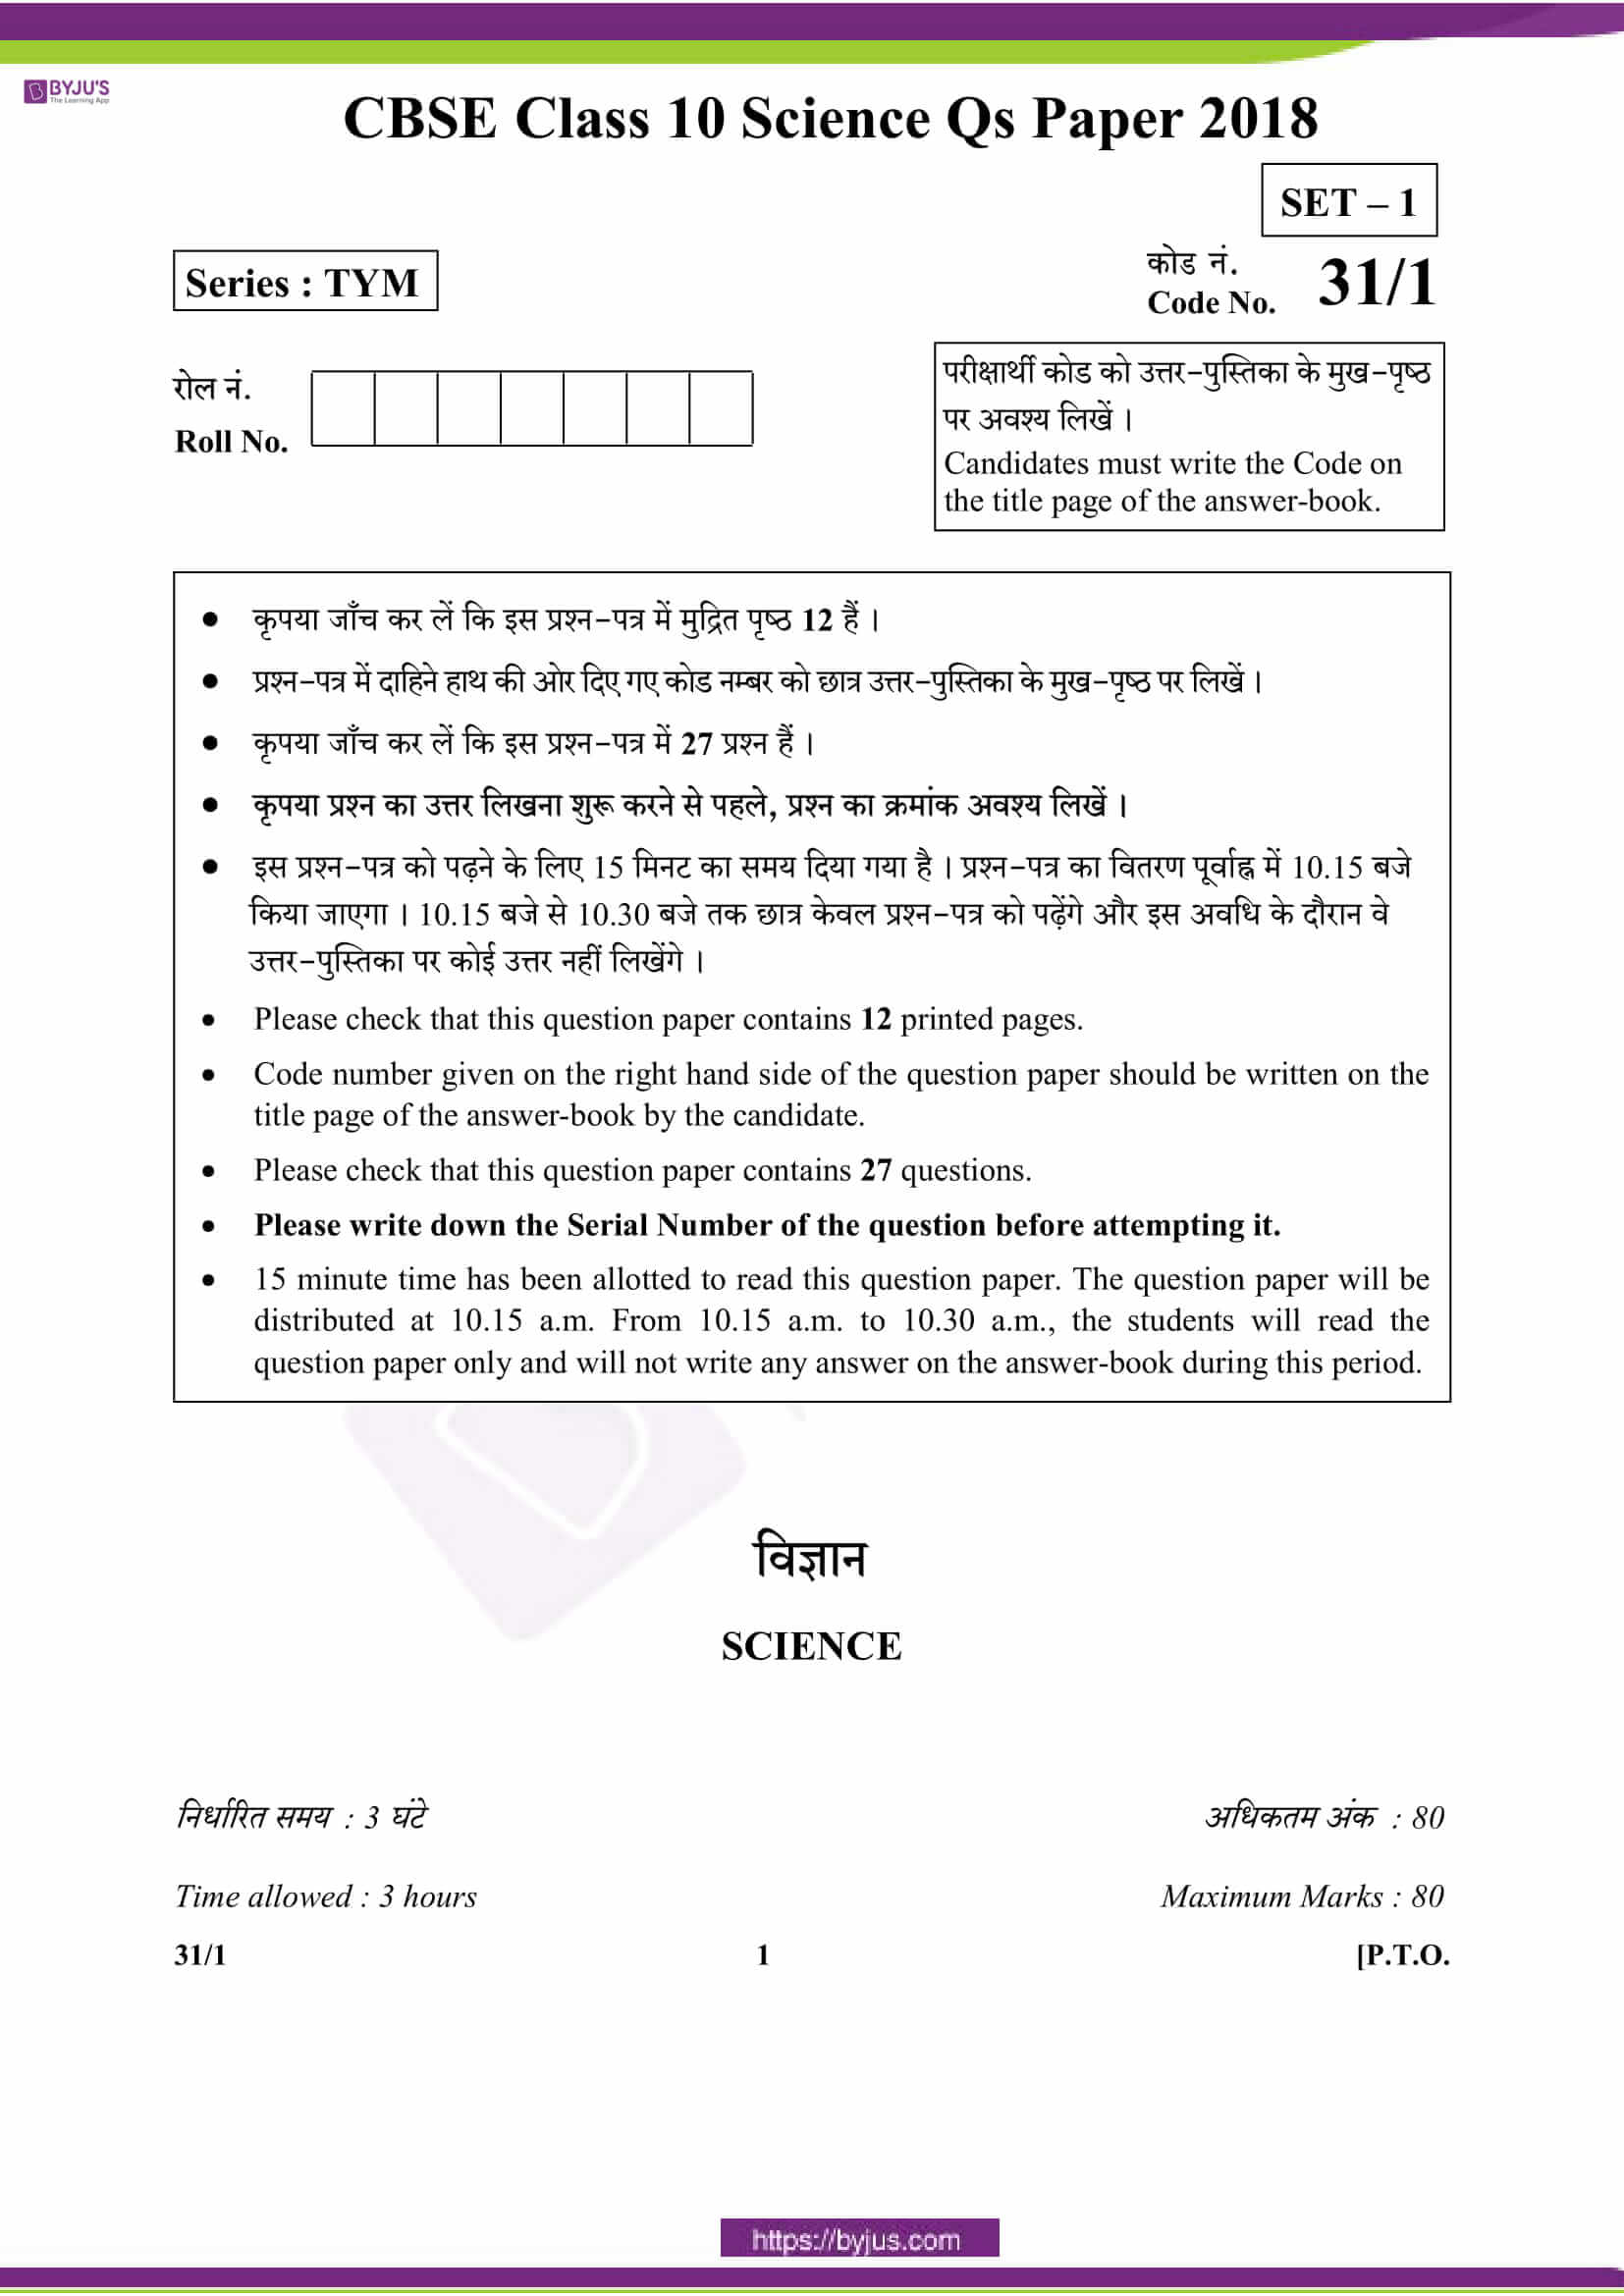 cbse class 10 science question paper 2018